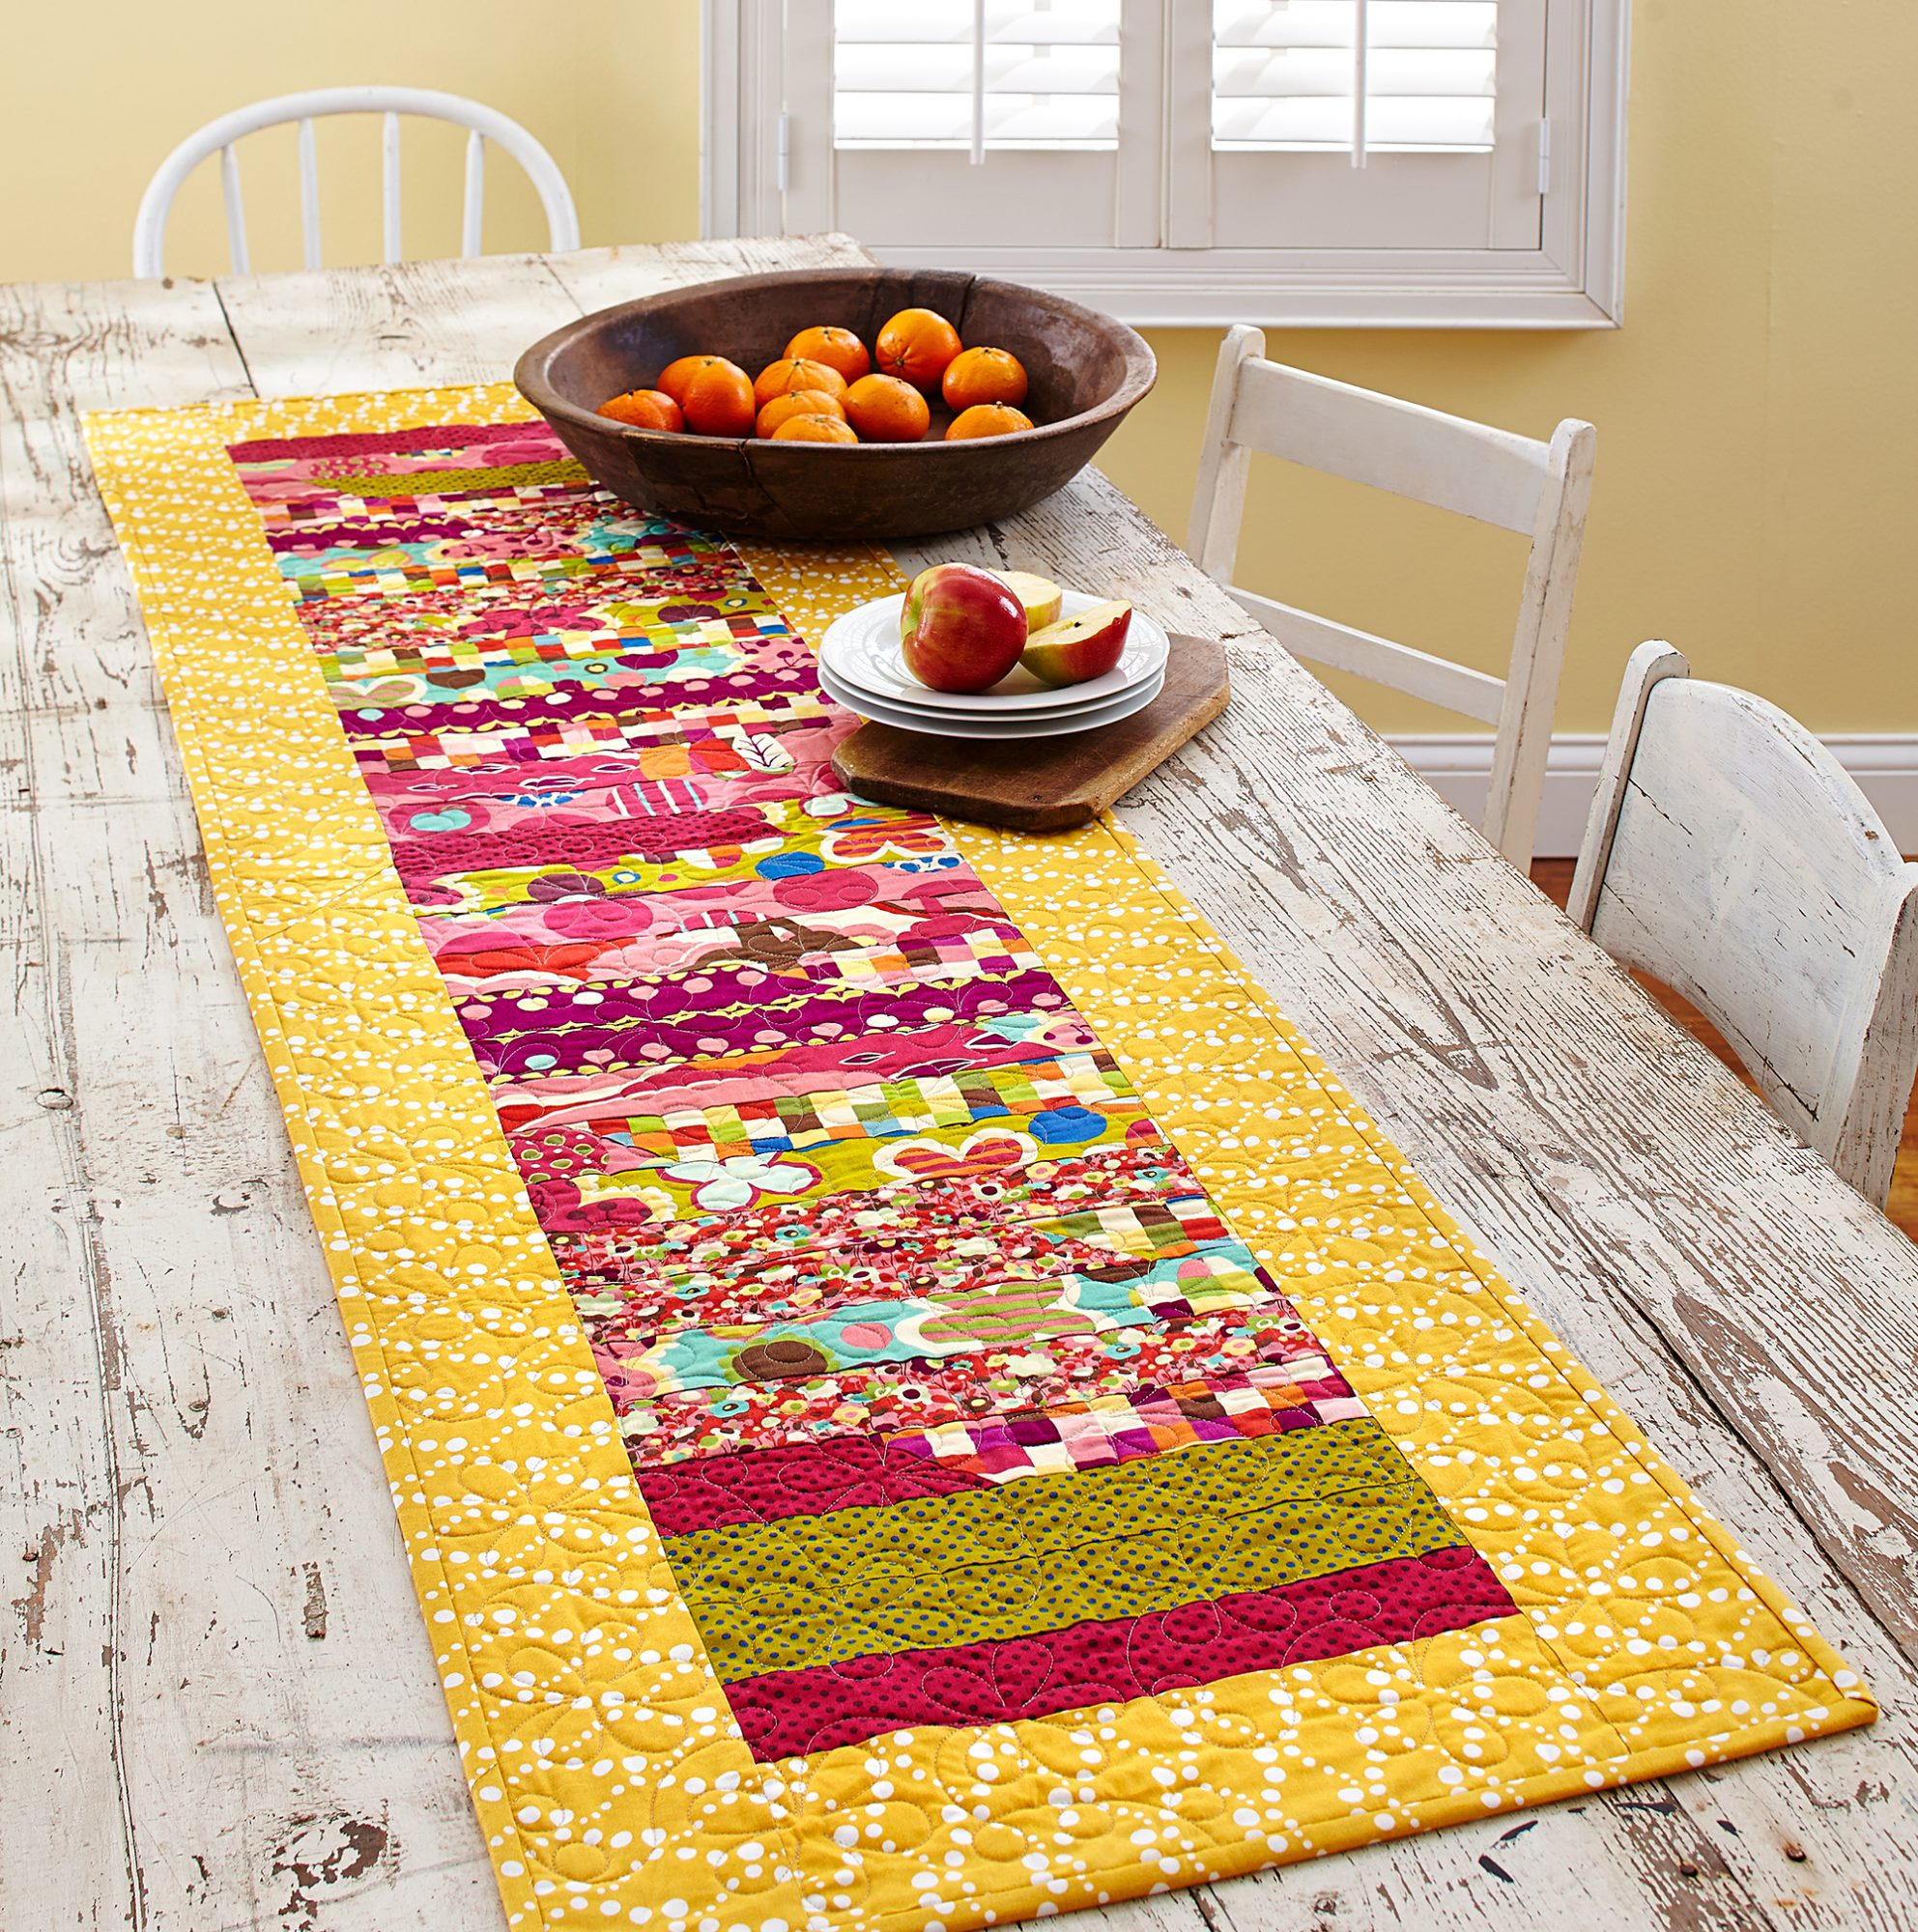 Free Table Runner Patterns Allpeoplequilt Com